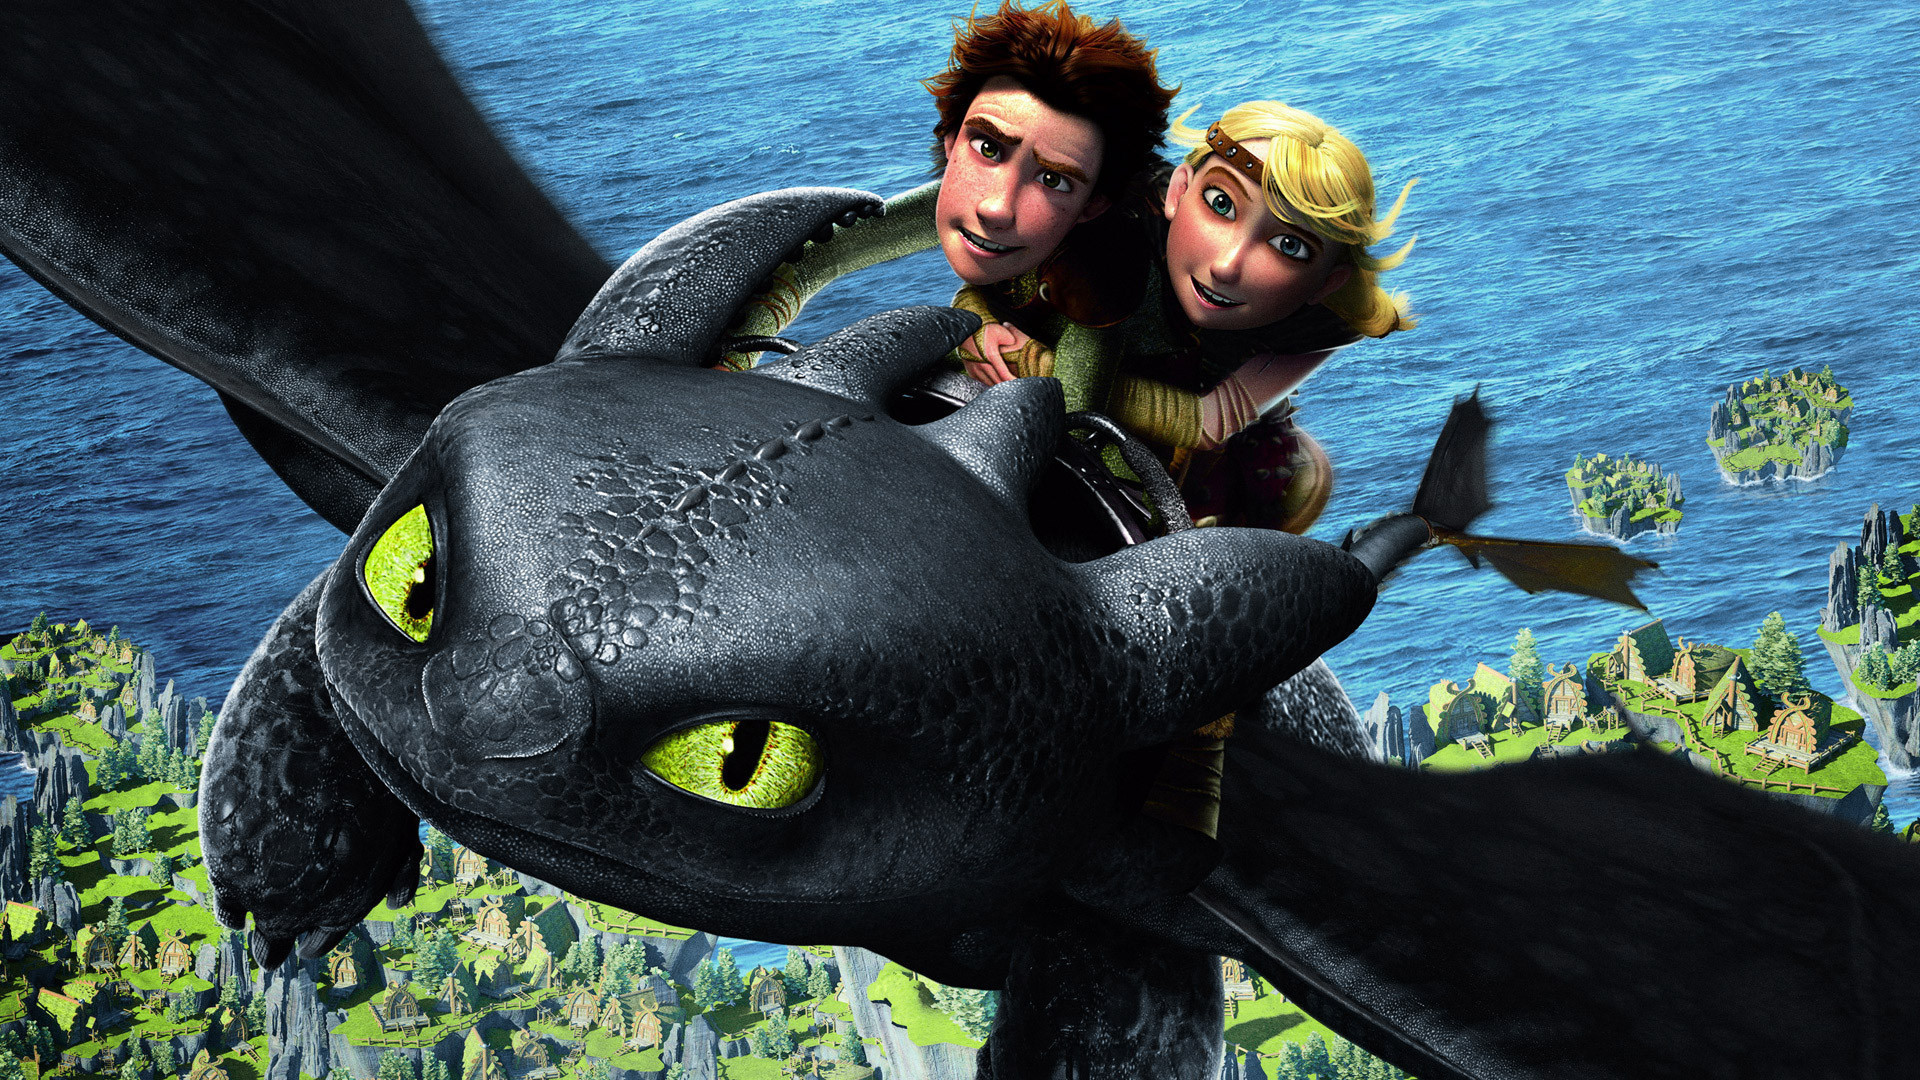 How to train your dragon hd wallpapers for desktop download - How to train your dragon hd download ...